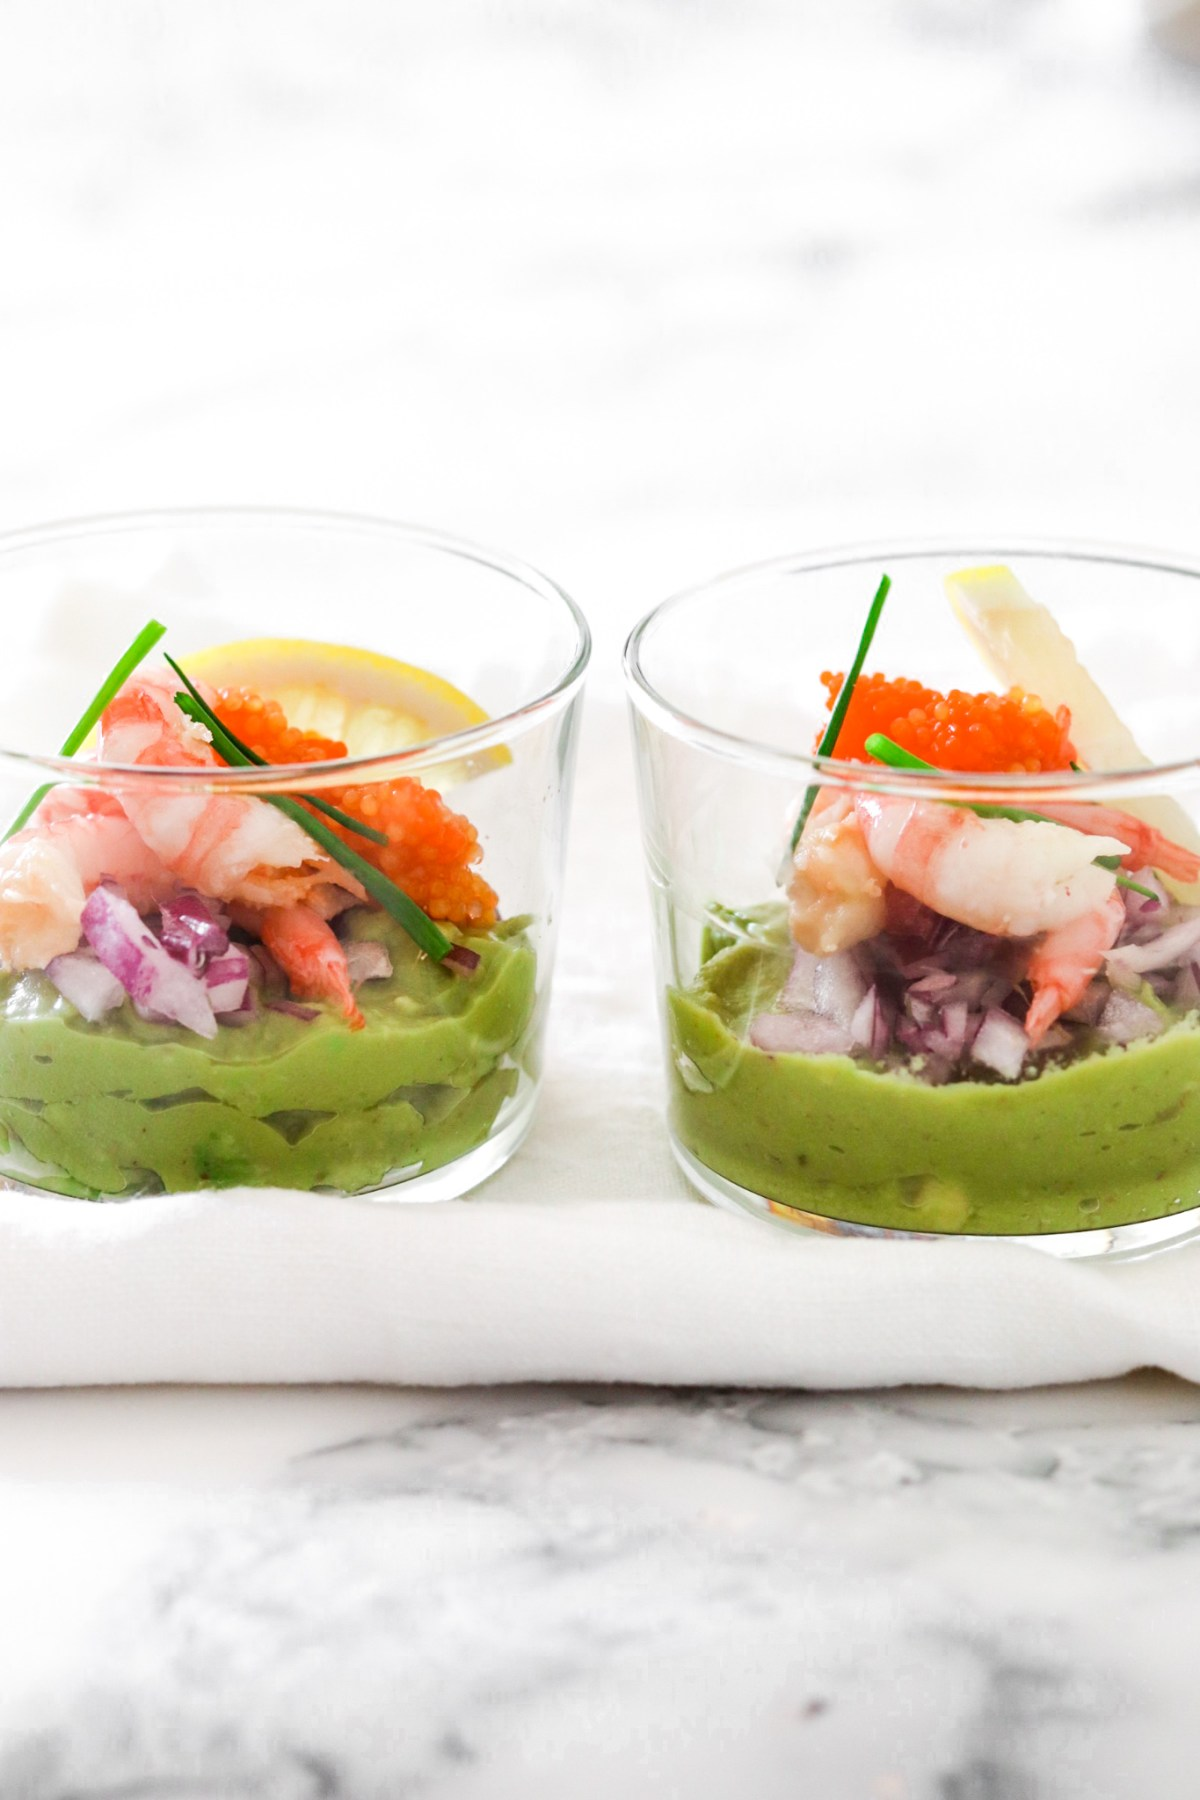 Avocado Mousse with Shrimps & Fish Roe (Low Carb) From Front